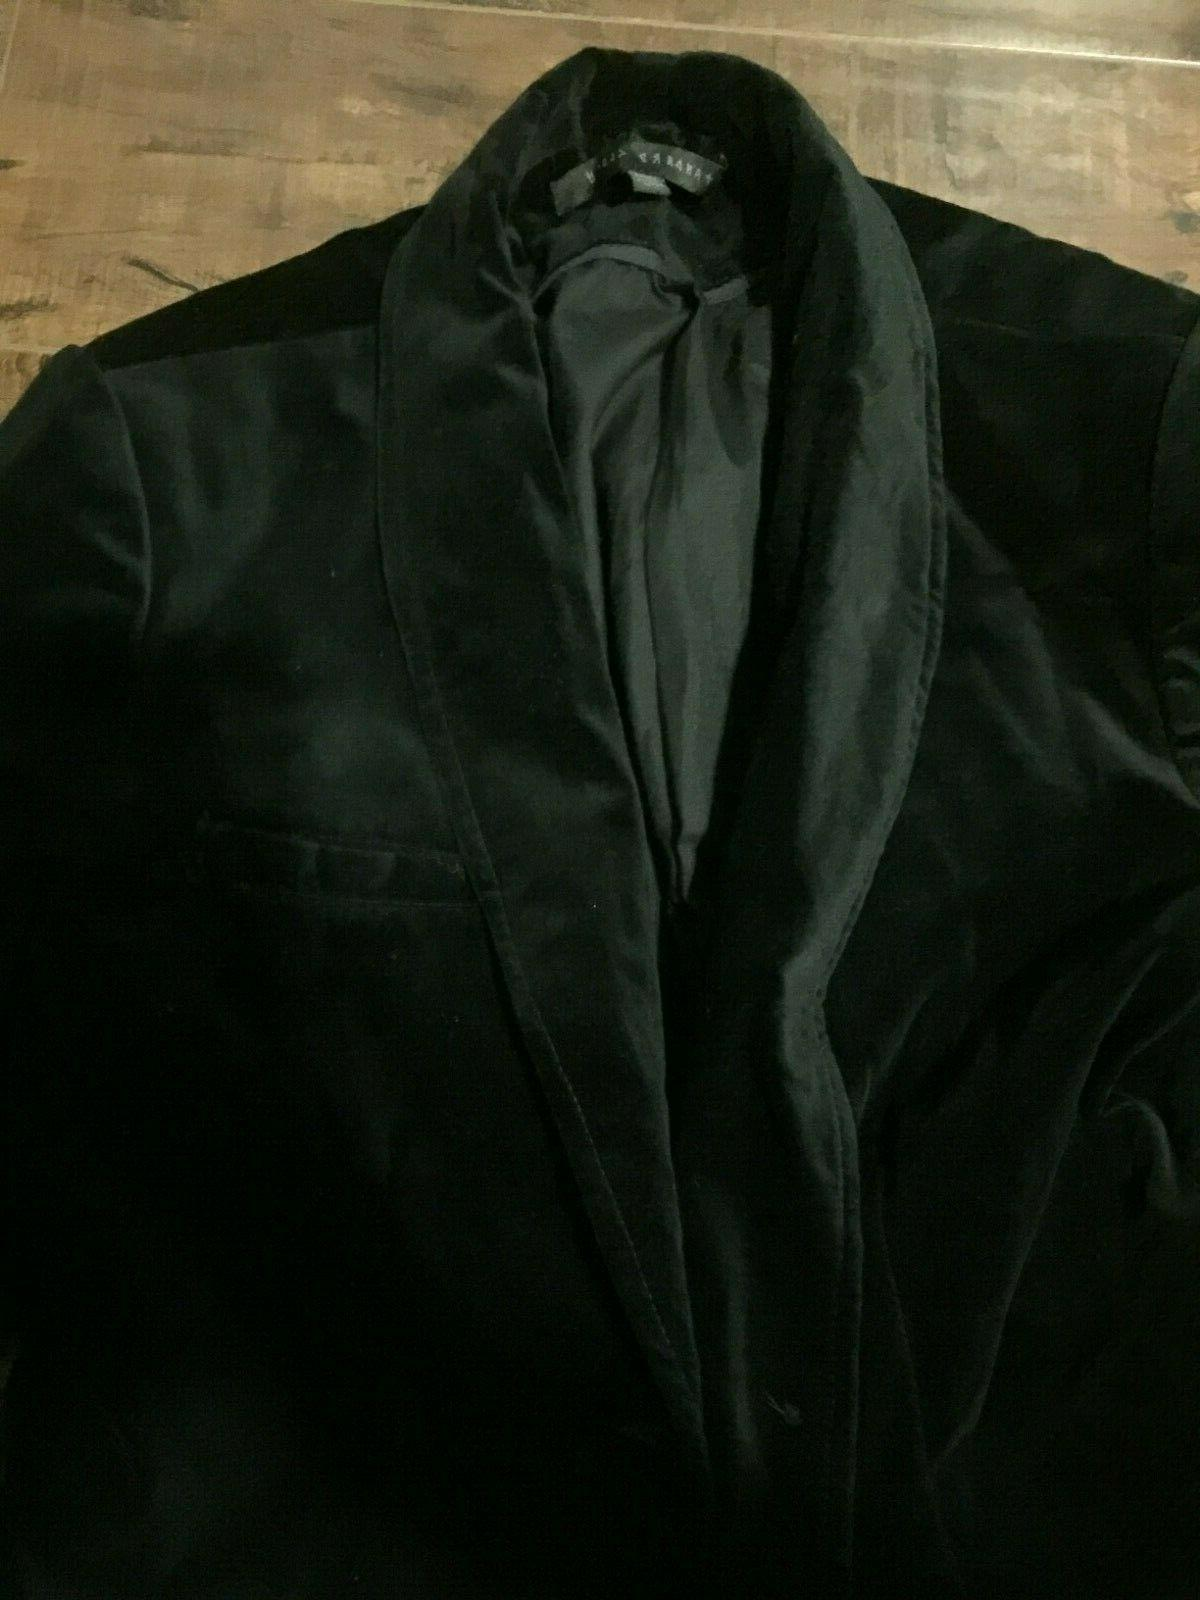 Black Men Jacket From Outfitters,